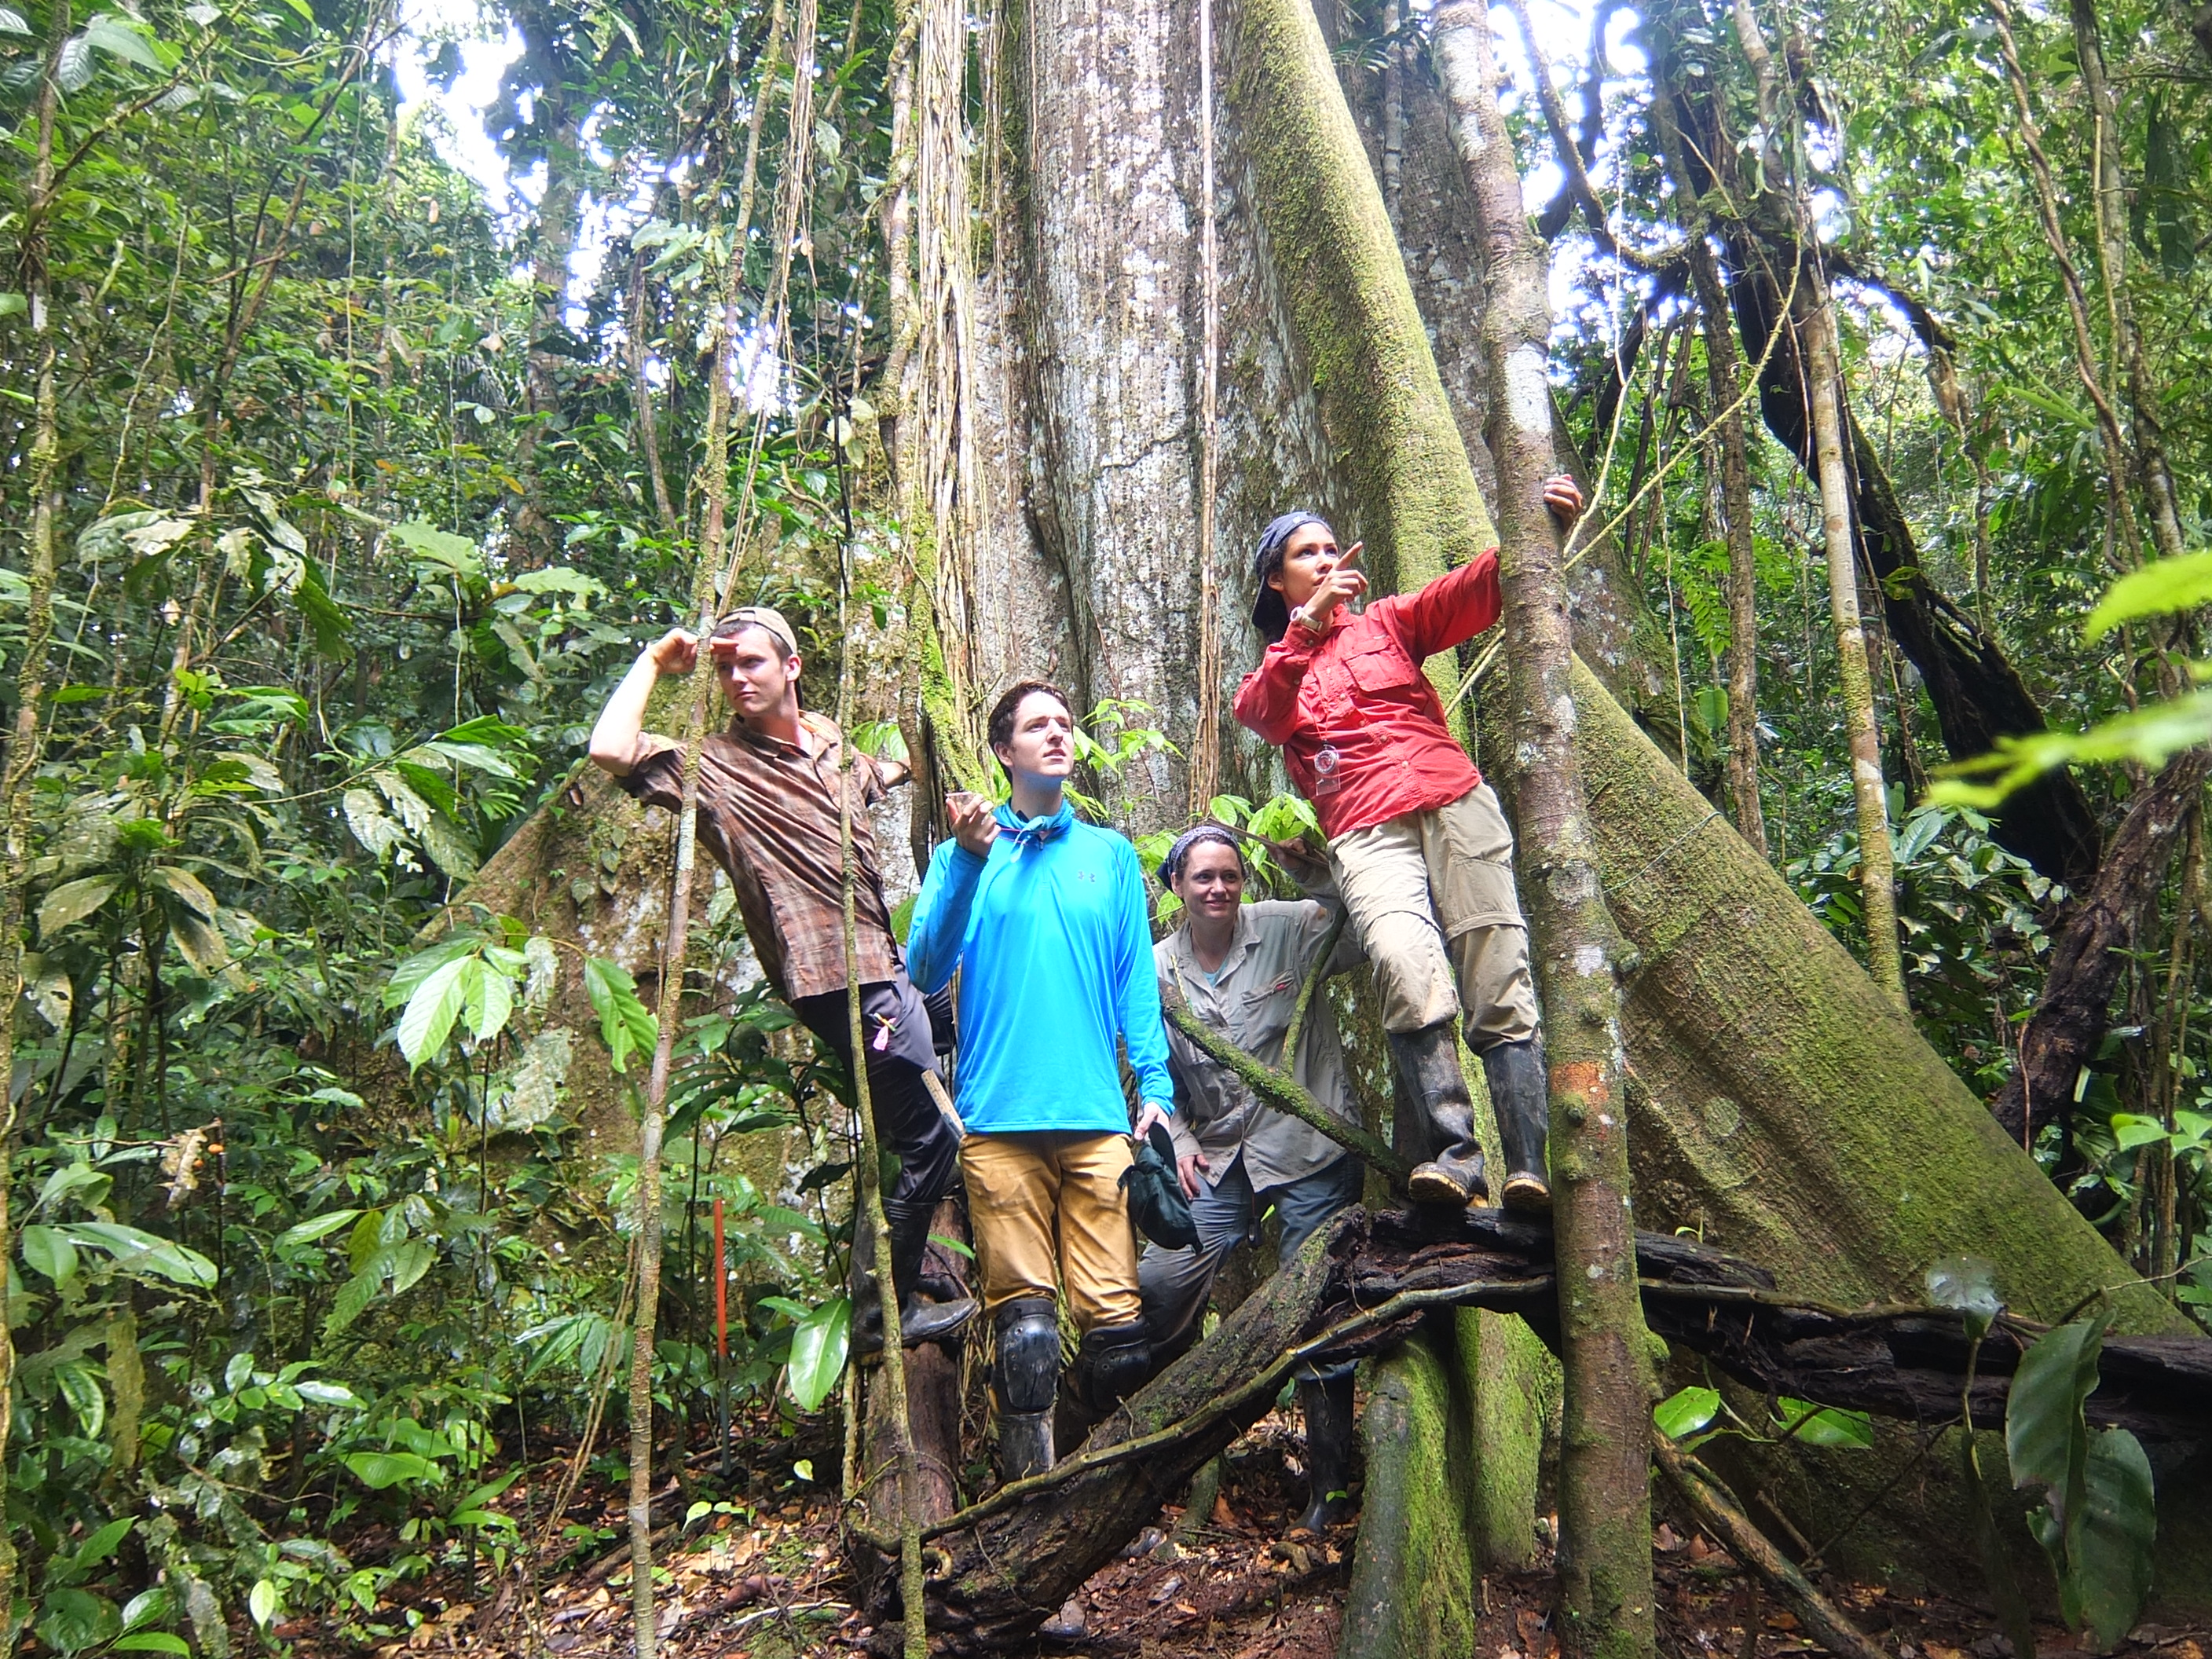 Seedling dynamics and the maintenance of diversity in an Amazonian rainforest